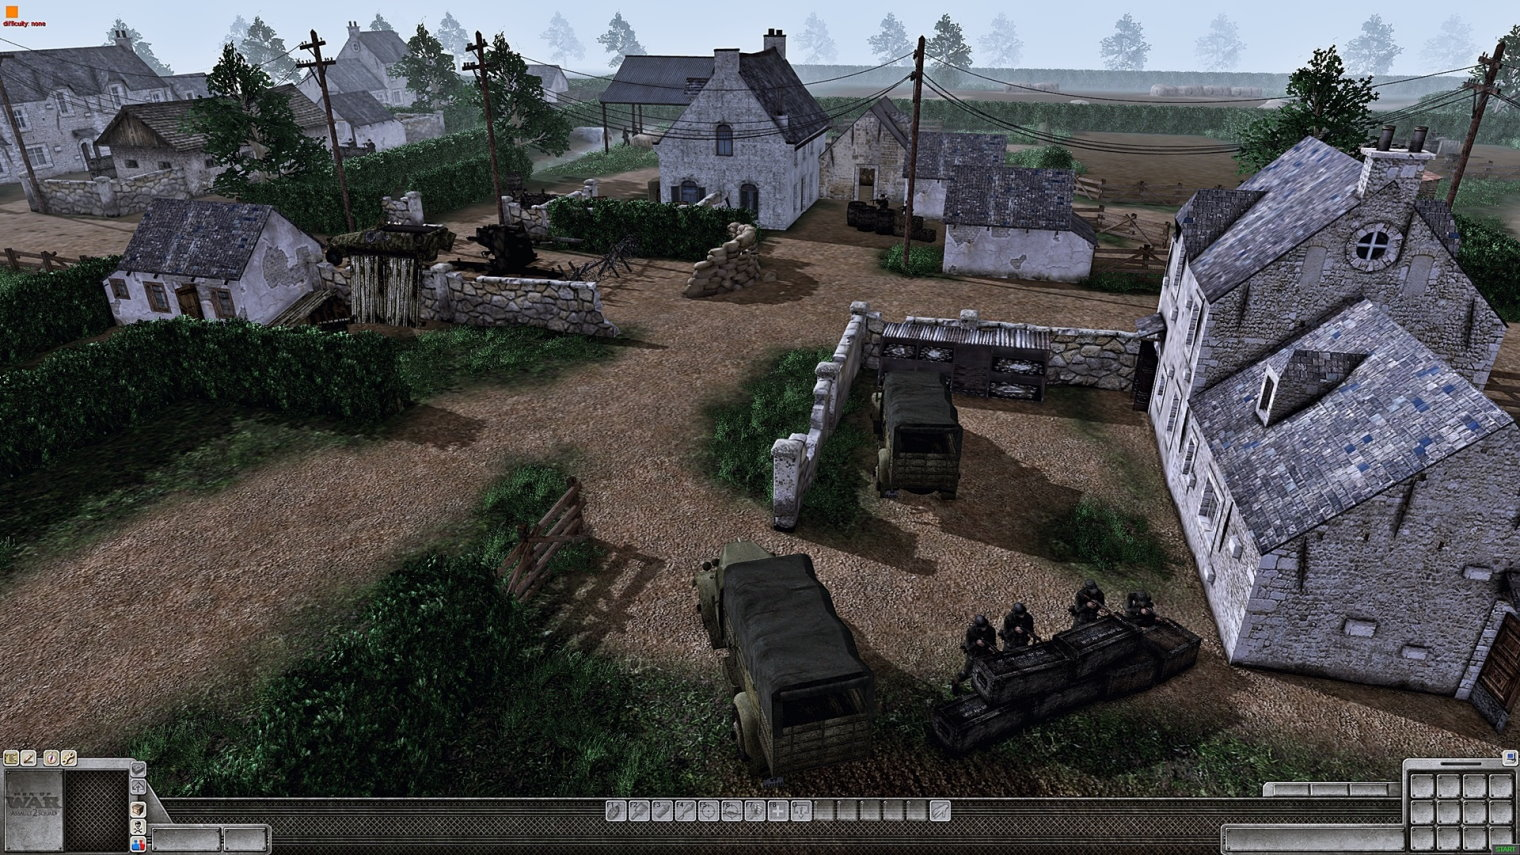 Brothers in Arms: D-DAY Mod - SturmFuhrer PK (AS2 — 3.262.0) (v03.10.2020)